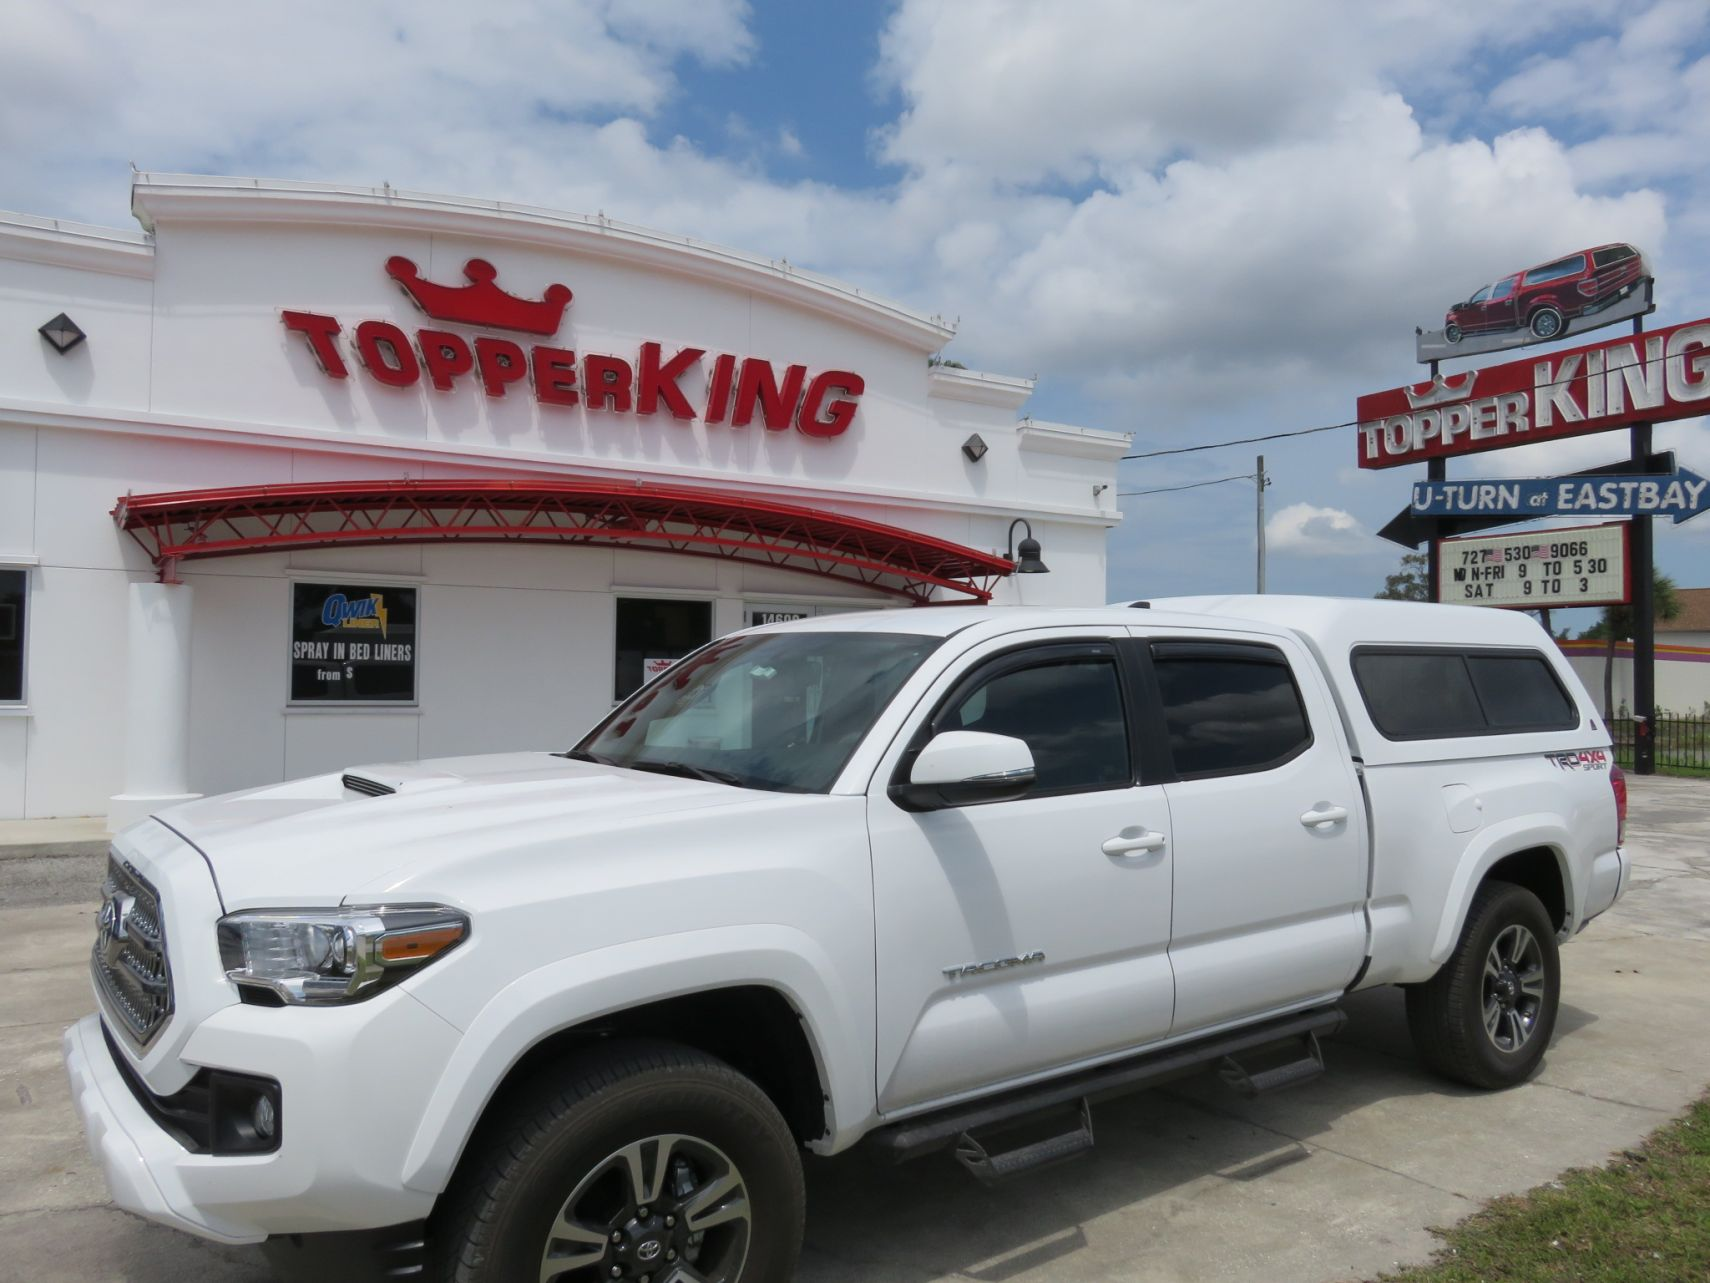 2017 Toyota Tacoma LEER 180, Drop Down Side Steps, Vent Visors, Tint, Hitch by TopperKING Brandon 813-689-2449 or Clearwater FL 727-530-9066.